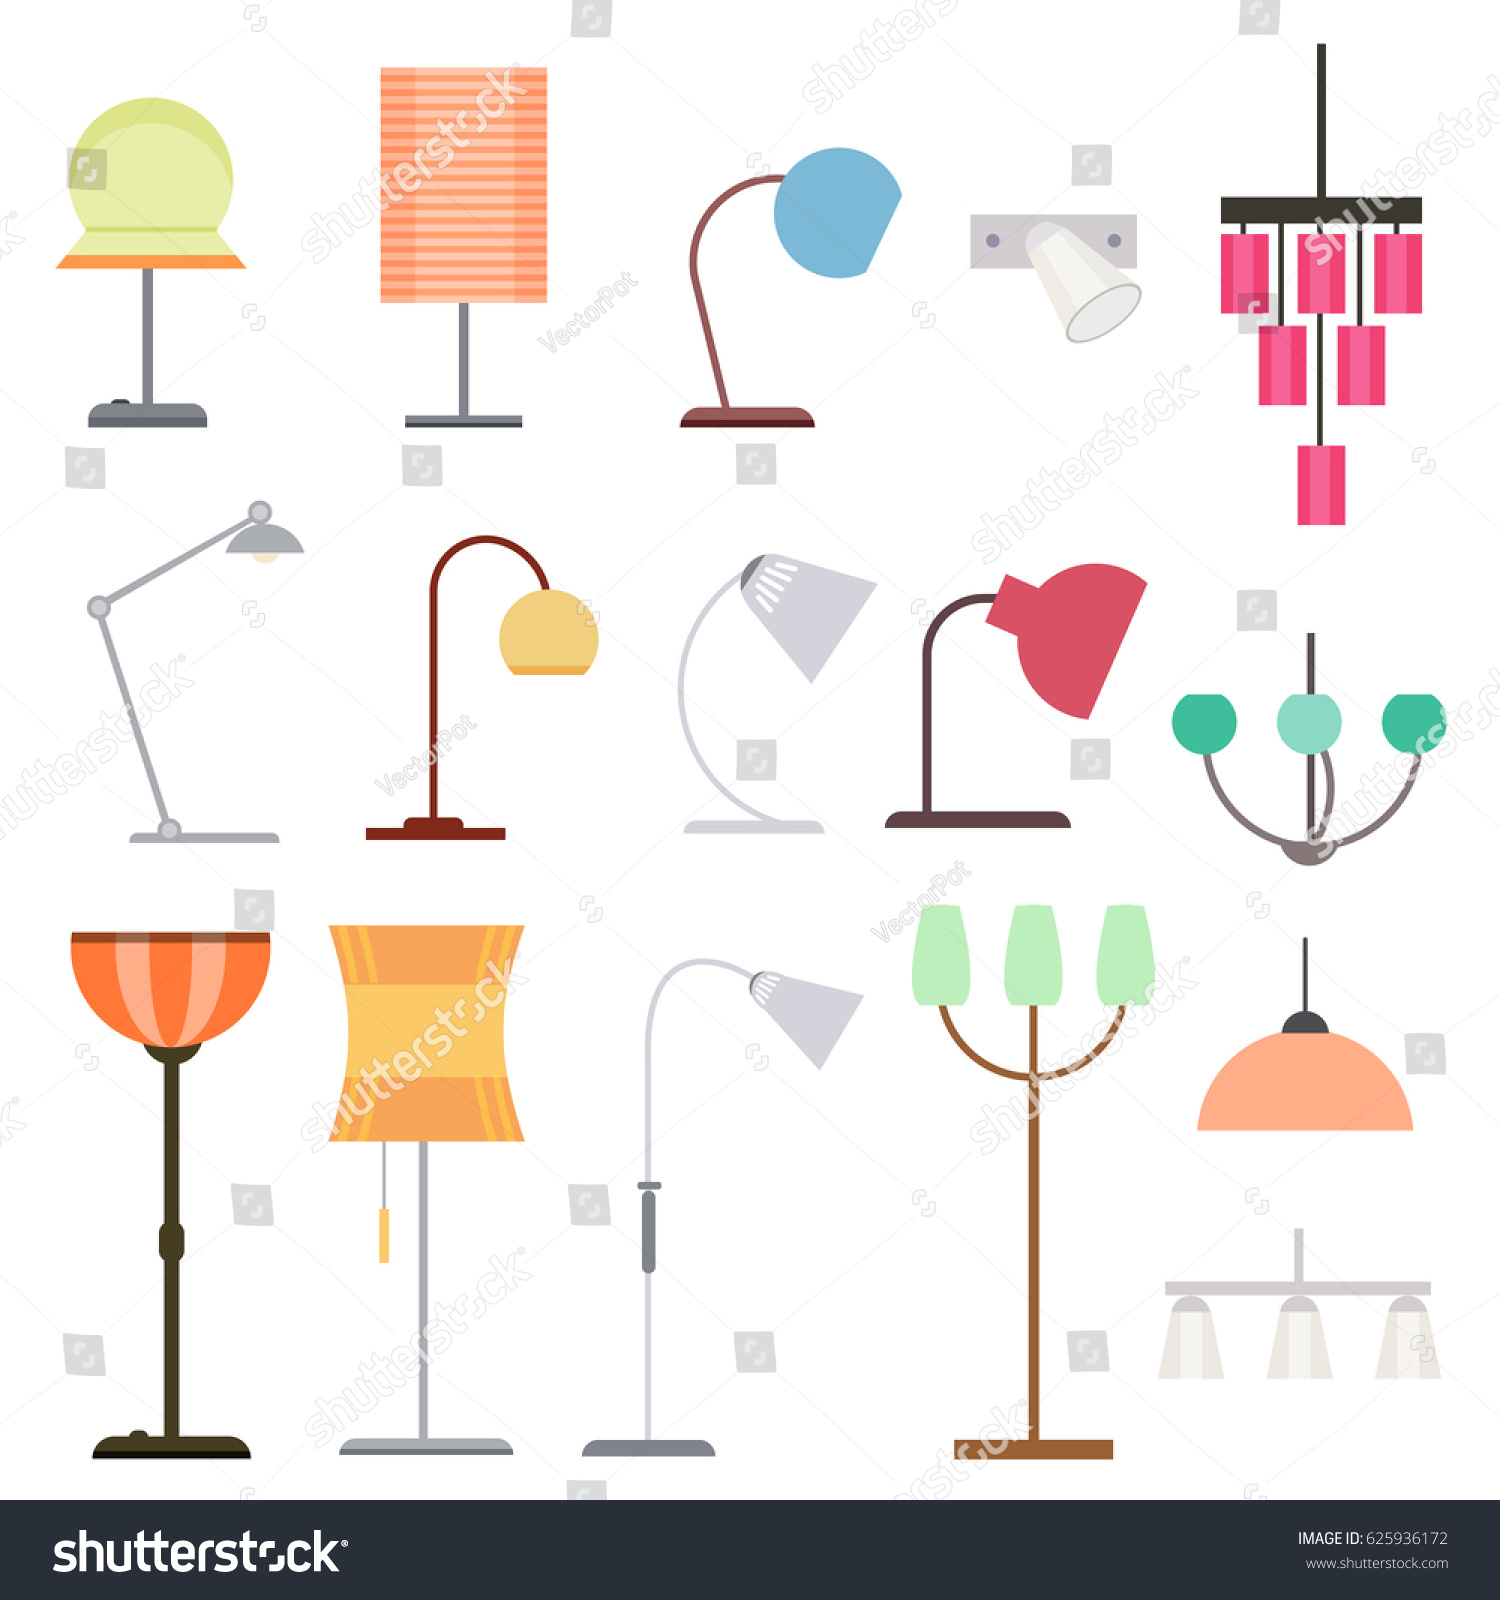 Colorful Indoor Lights Collection Different Kinds Stock Vector